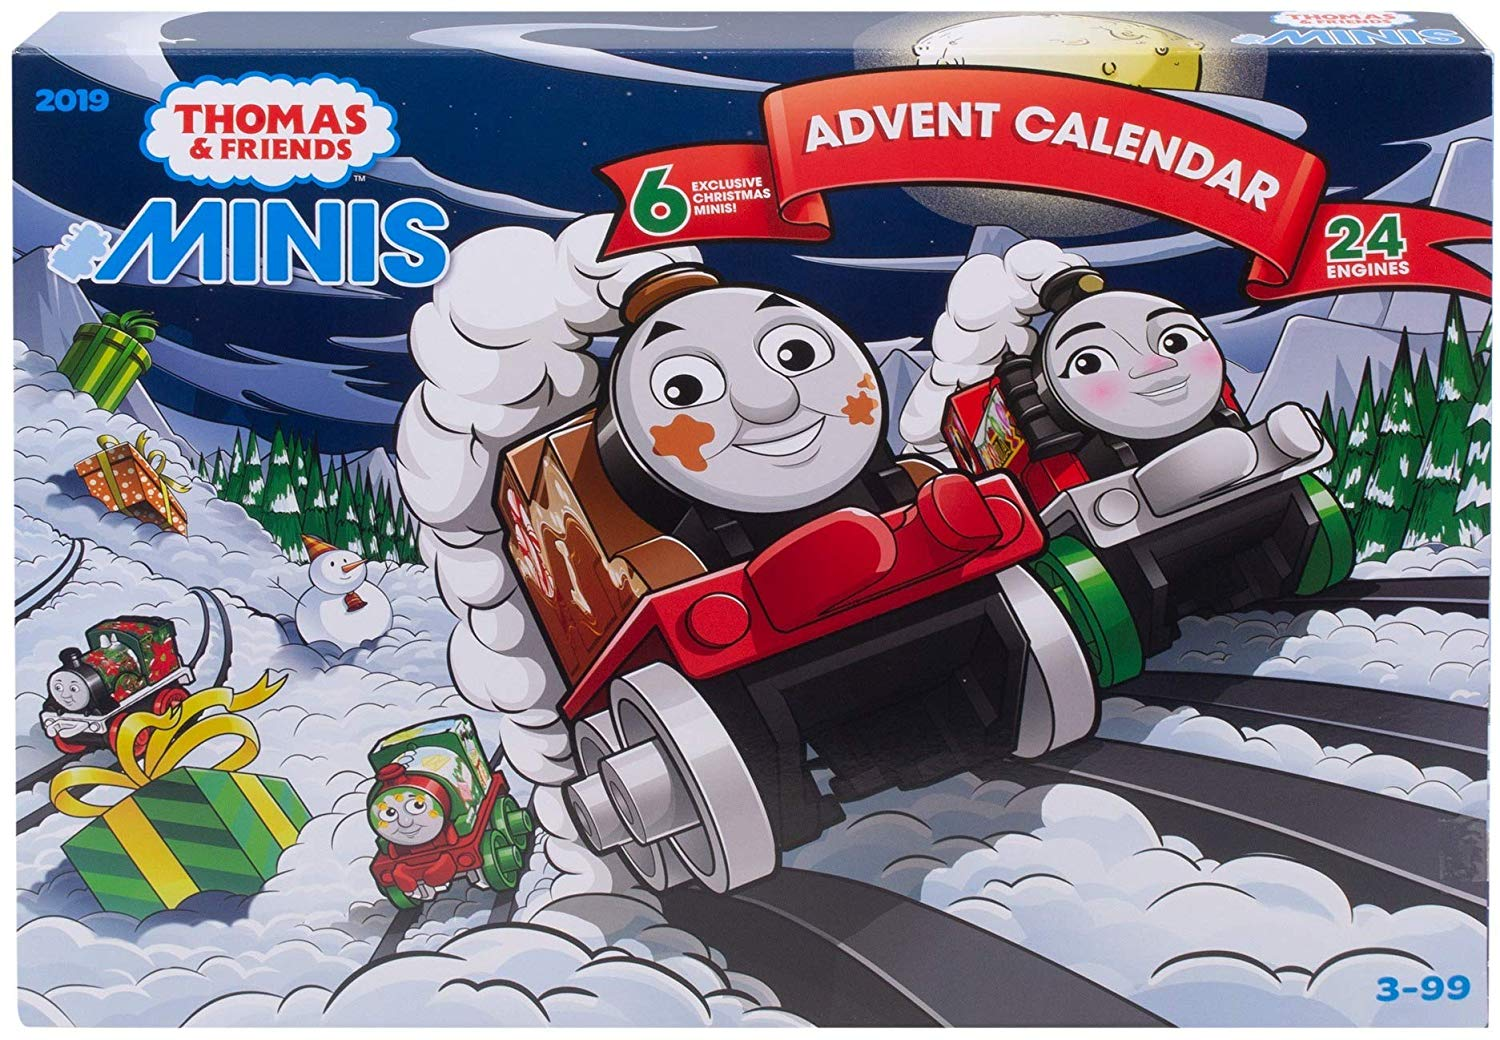 Thomas Friends advent calendar